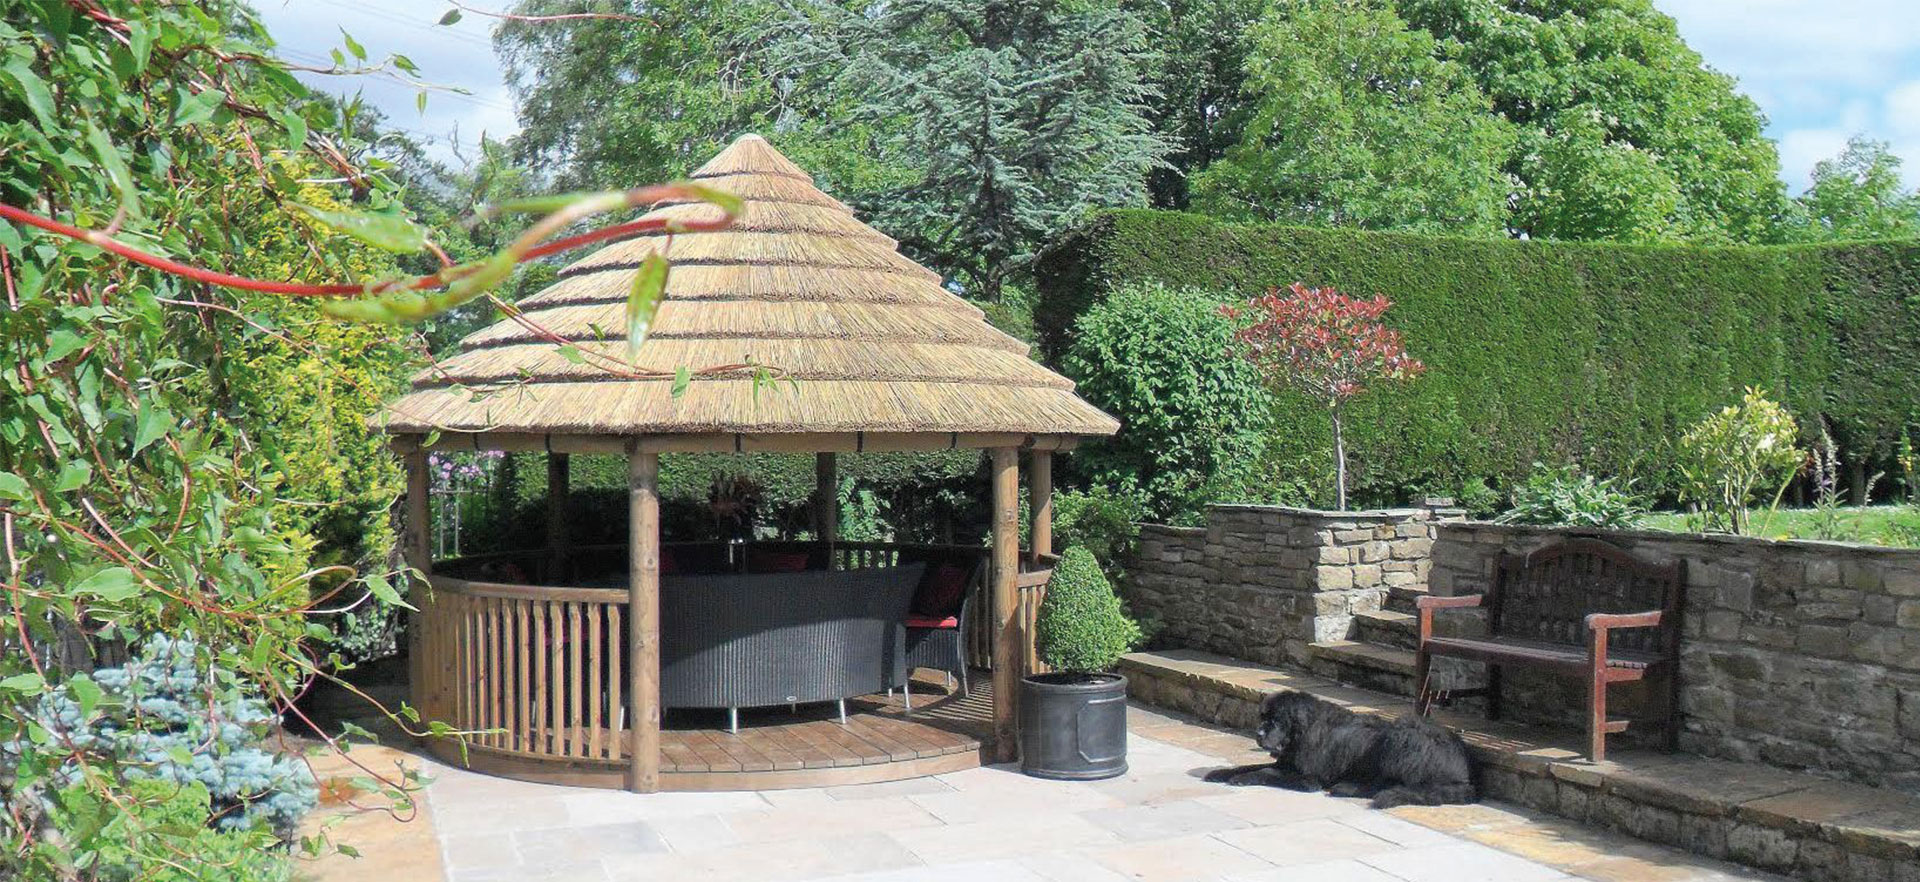 4 metre thatched roof gazebo in enclosed garden space